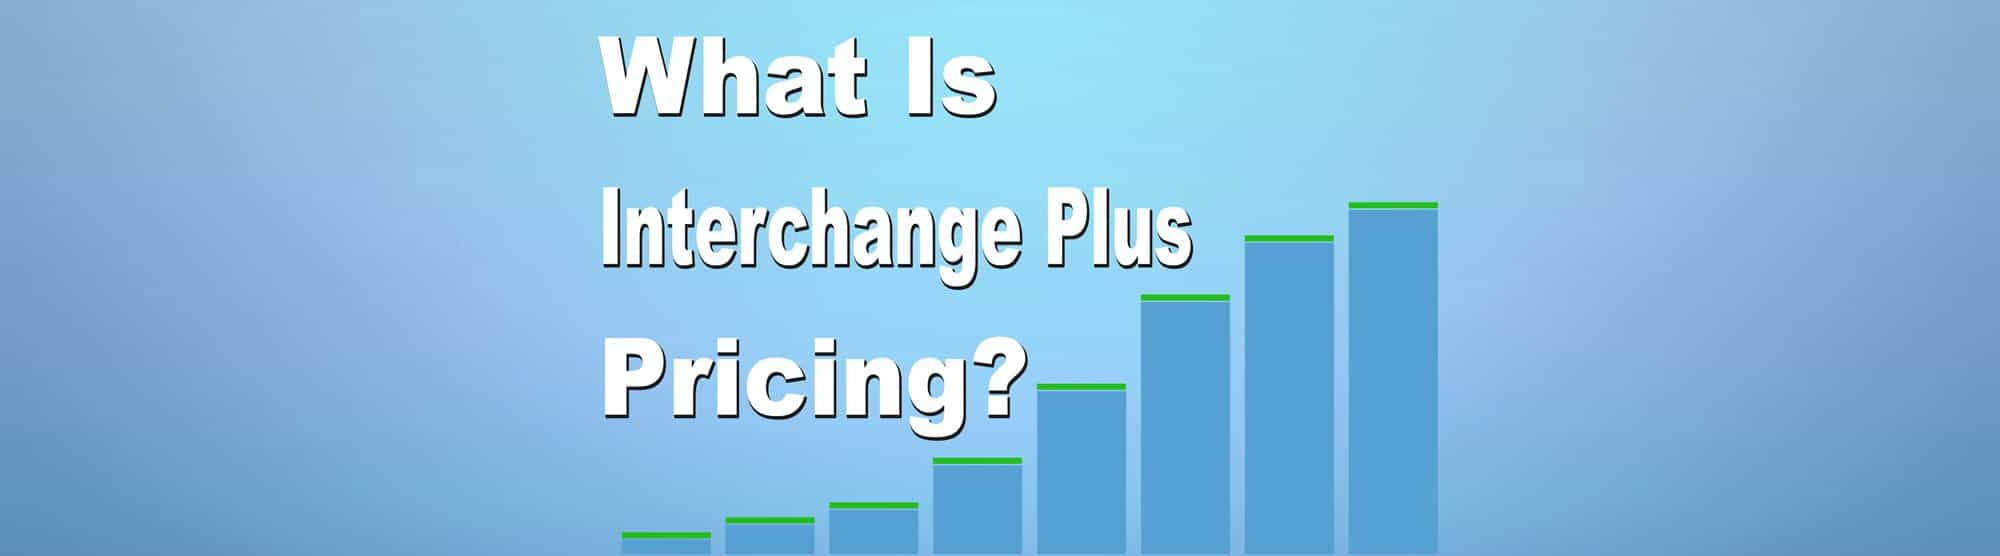 What is Interchange Plus Pricing